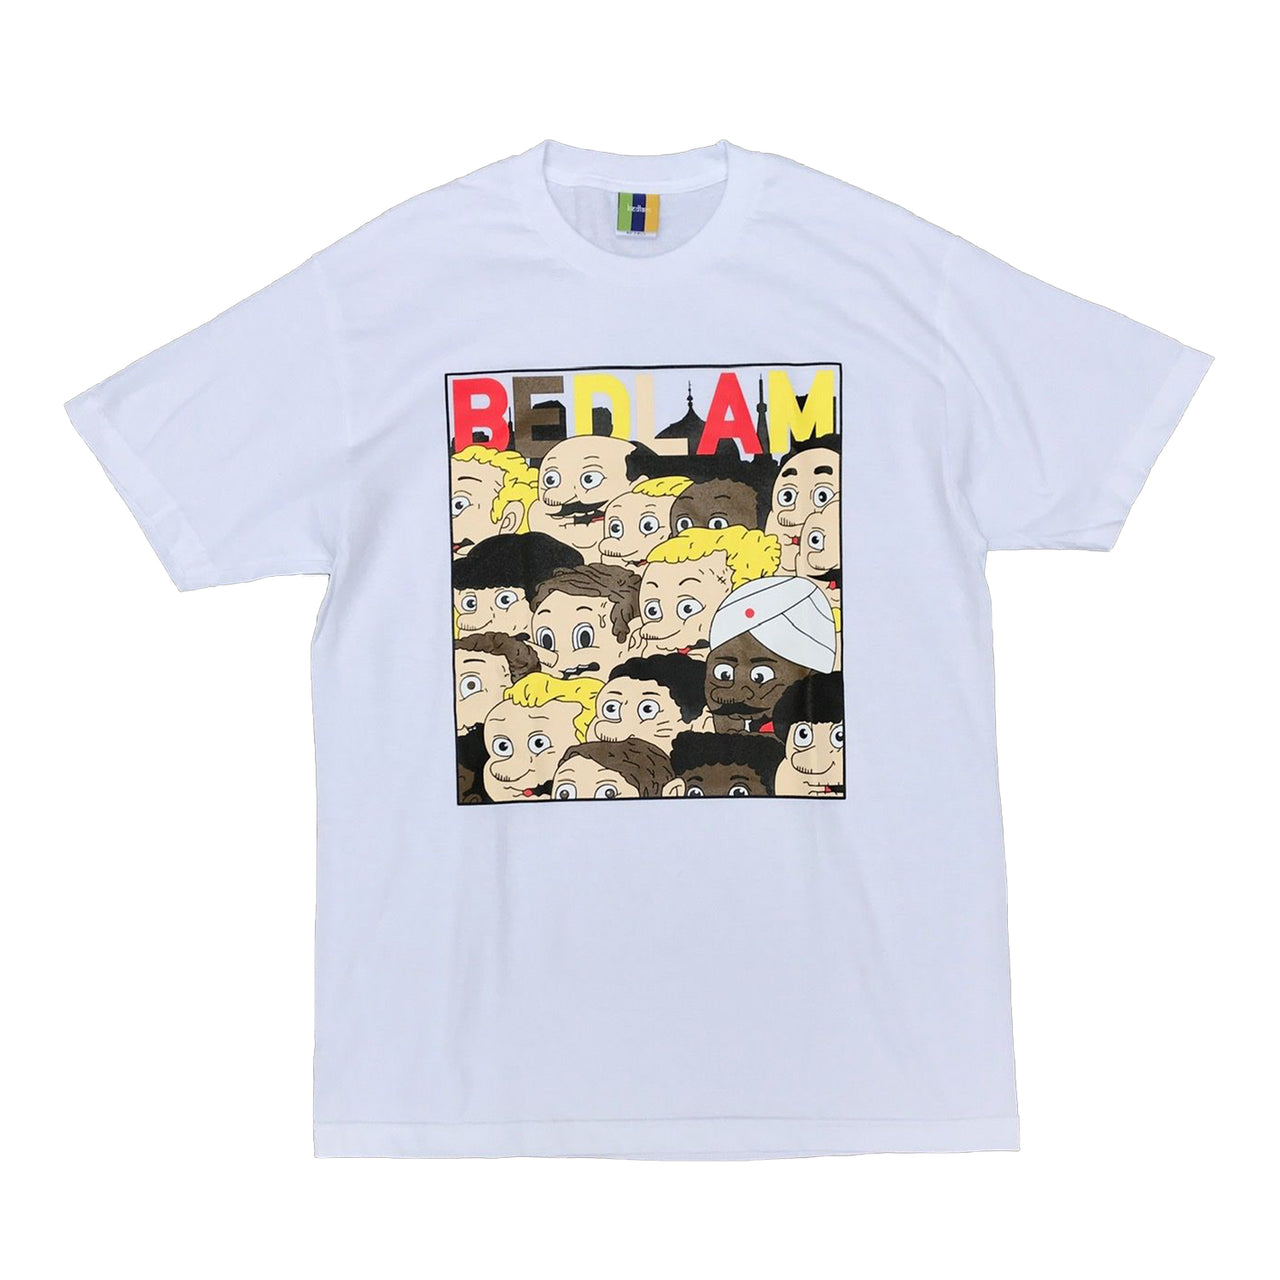 City Play Tee (White)